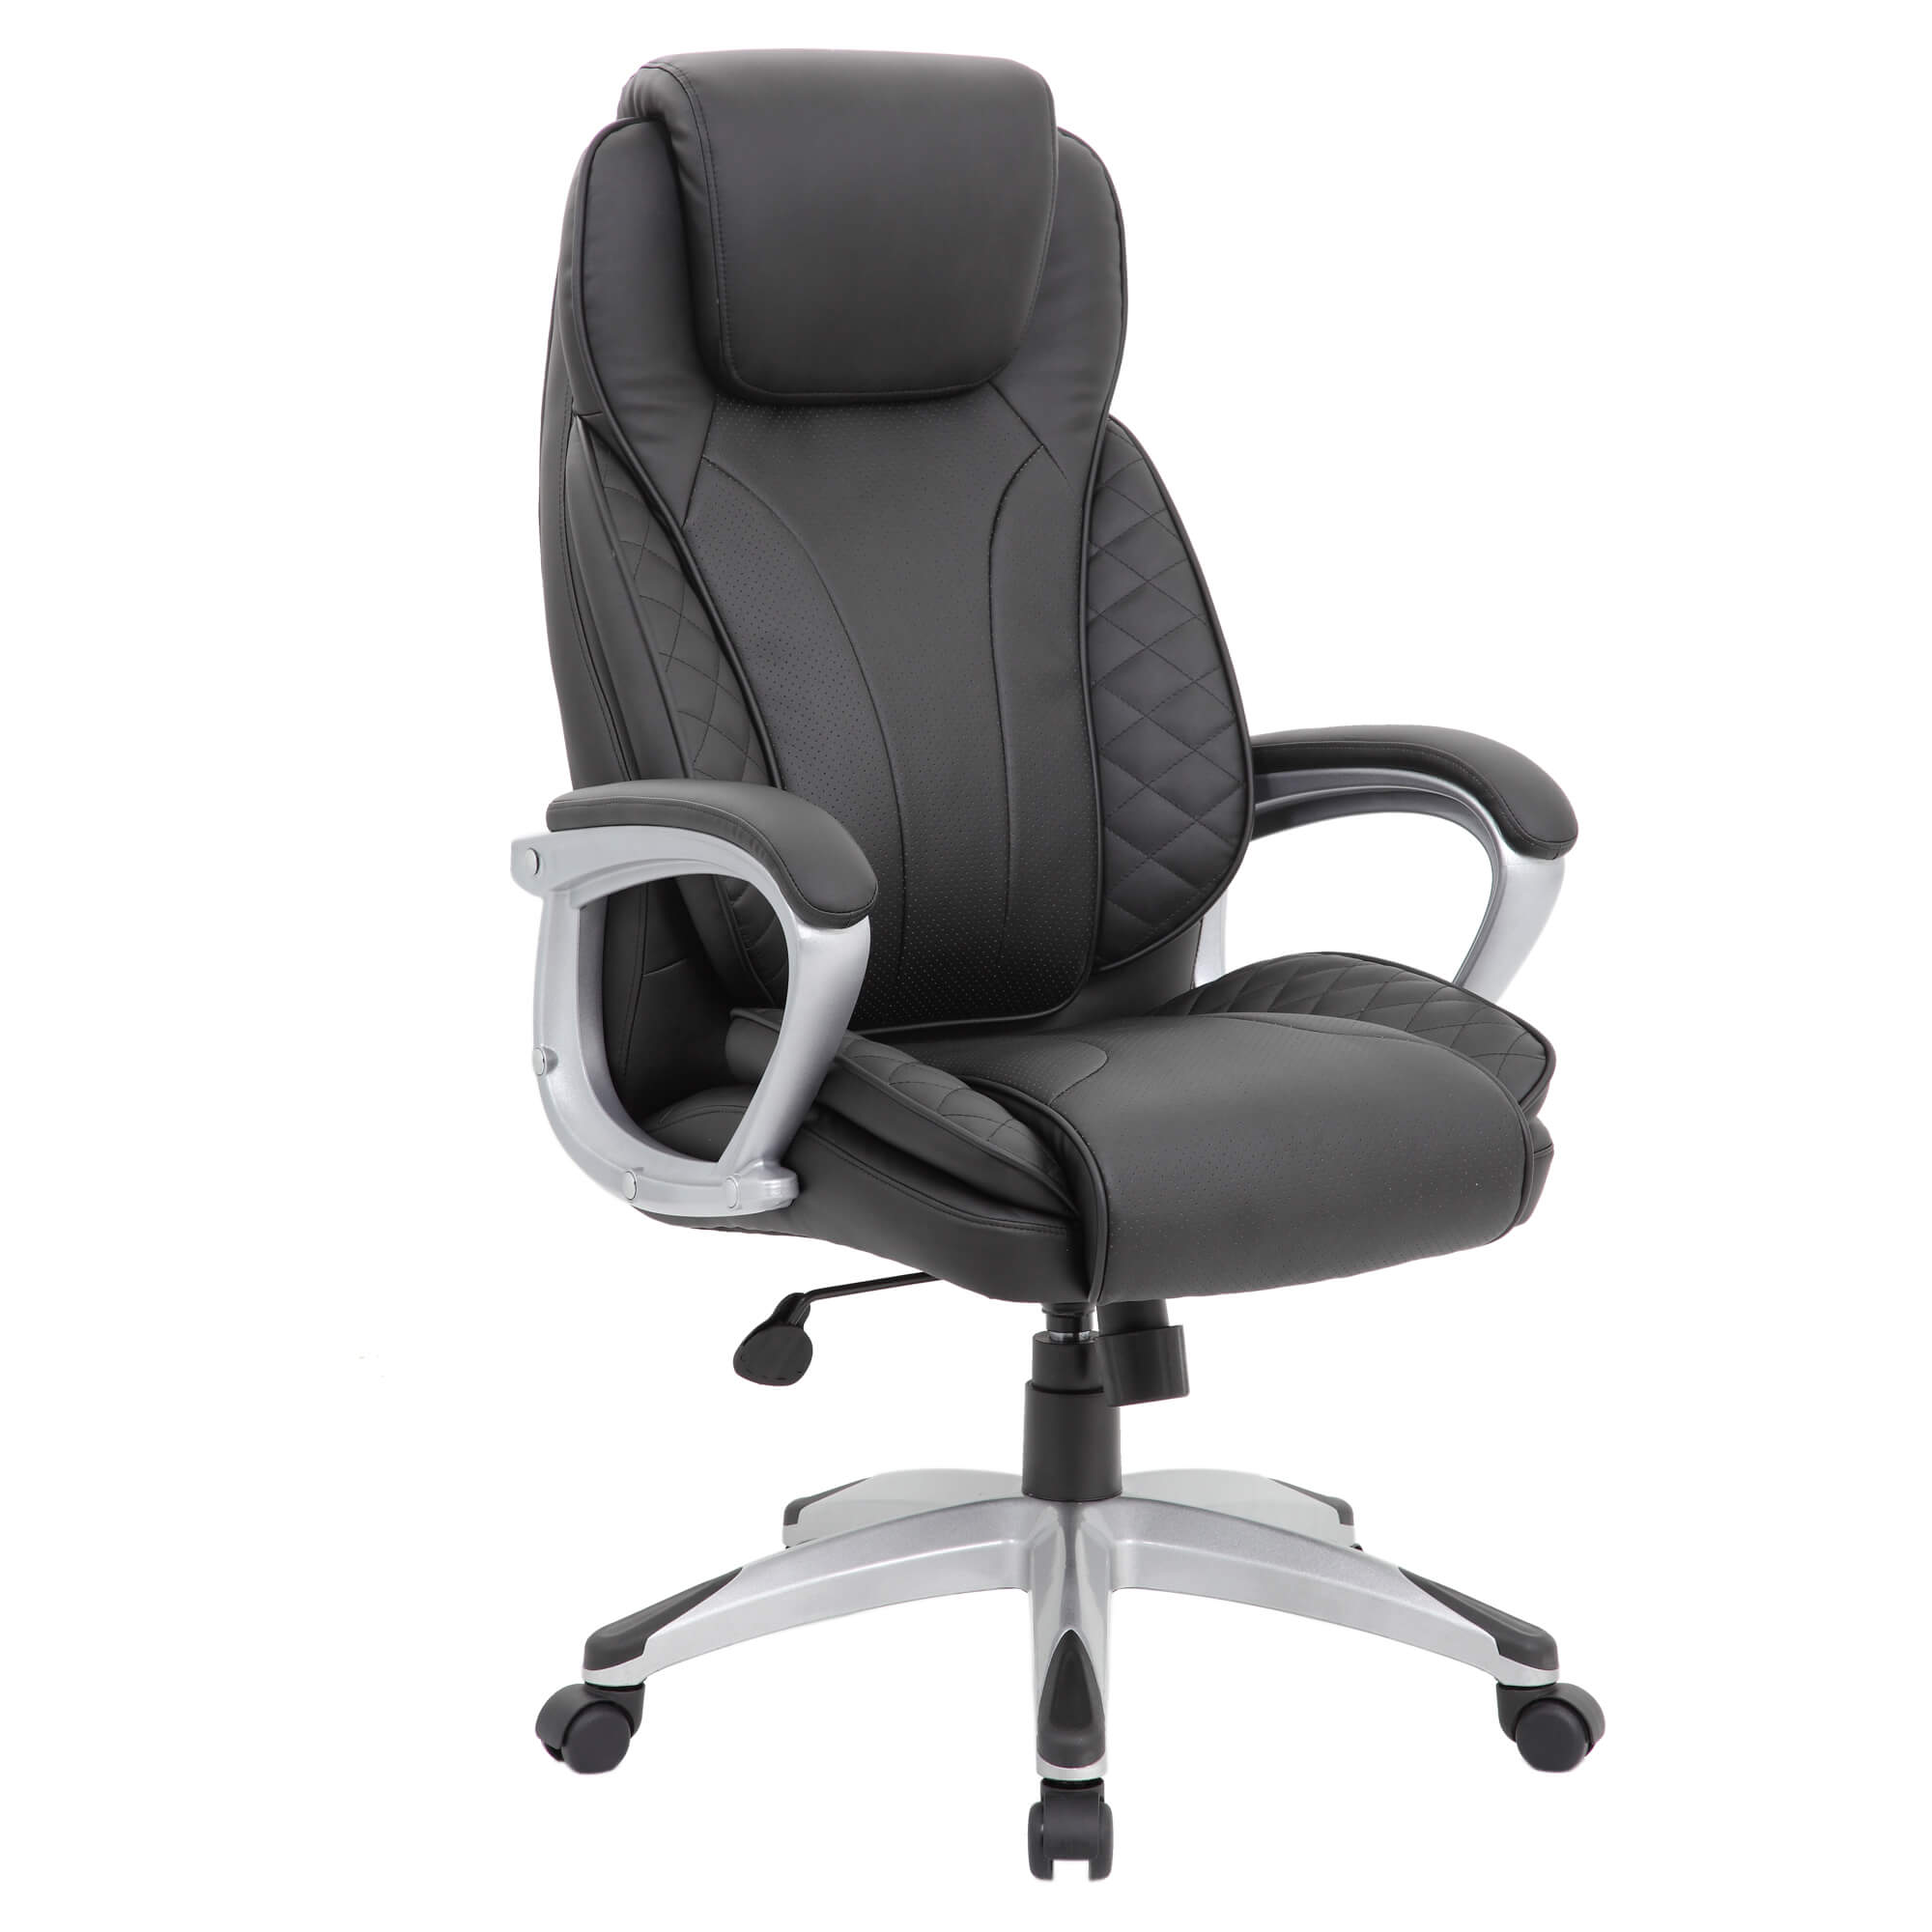 Tristar Manager/Office Chair